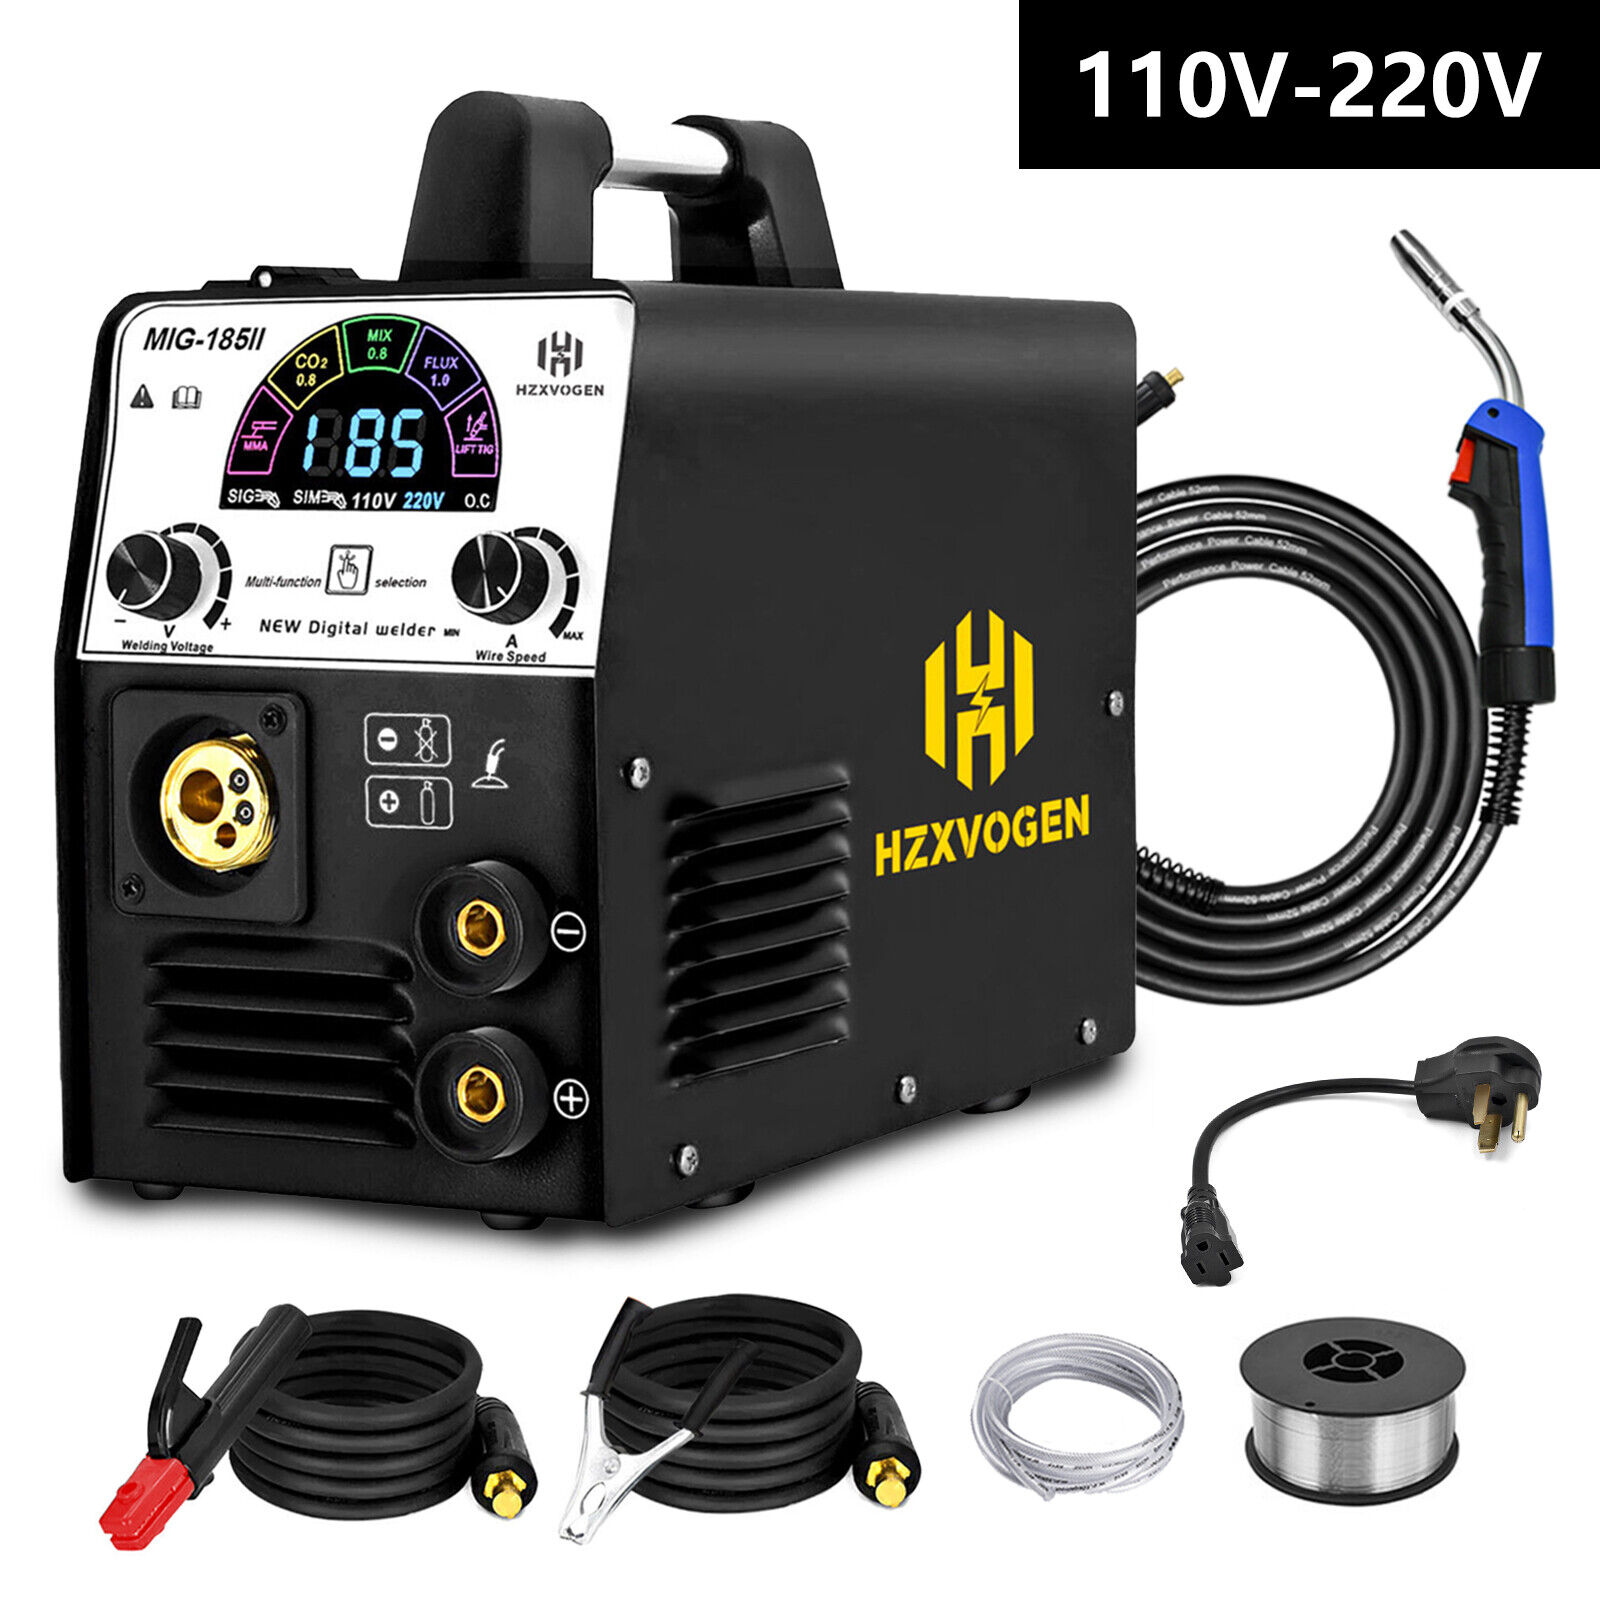 LED 110V 220V 180A MIG Welder Gas/Gasless MIG ARC Stick Lift TIG Welding Machine. Available Now for 237.49